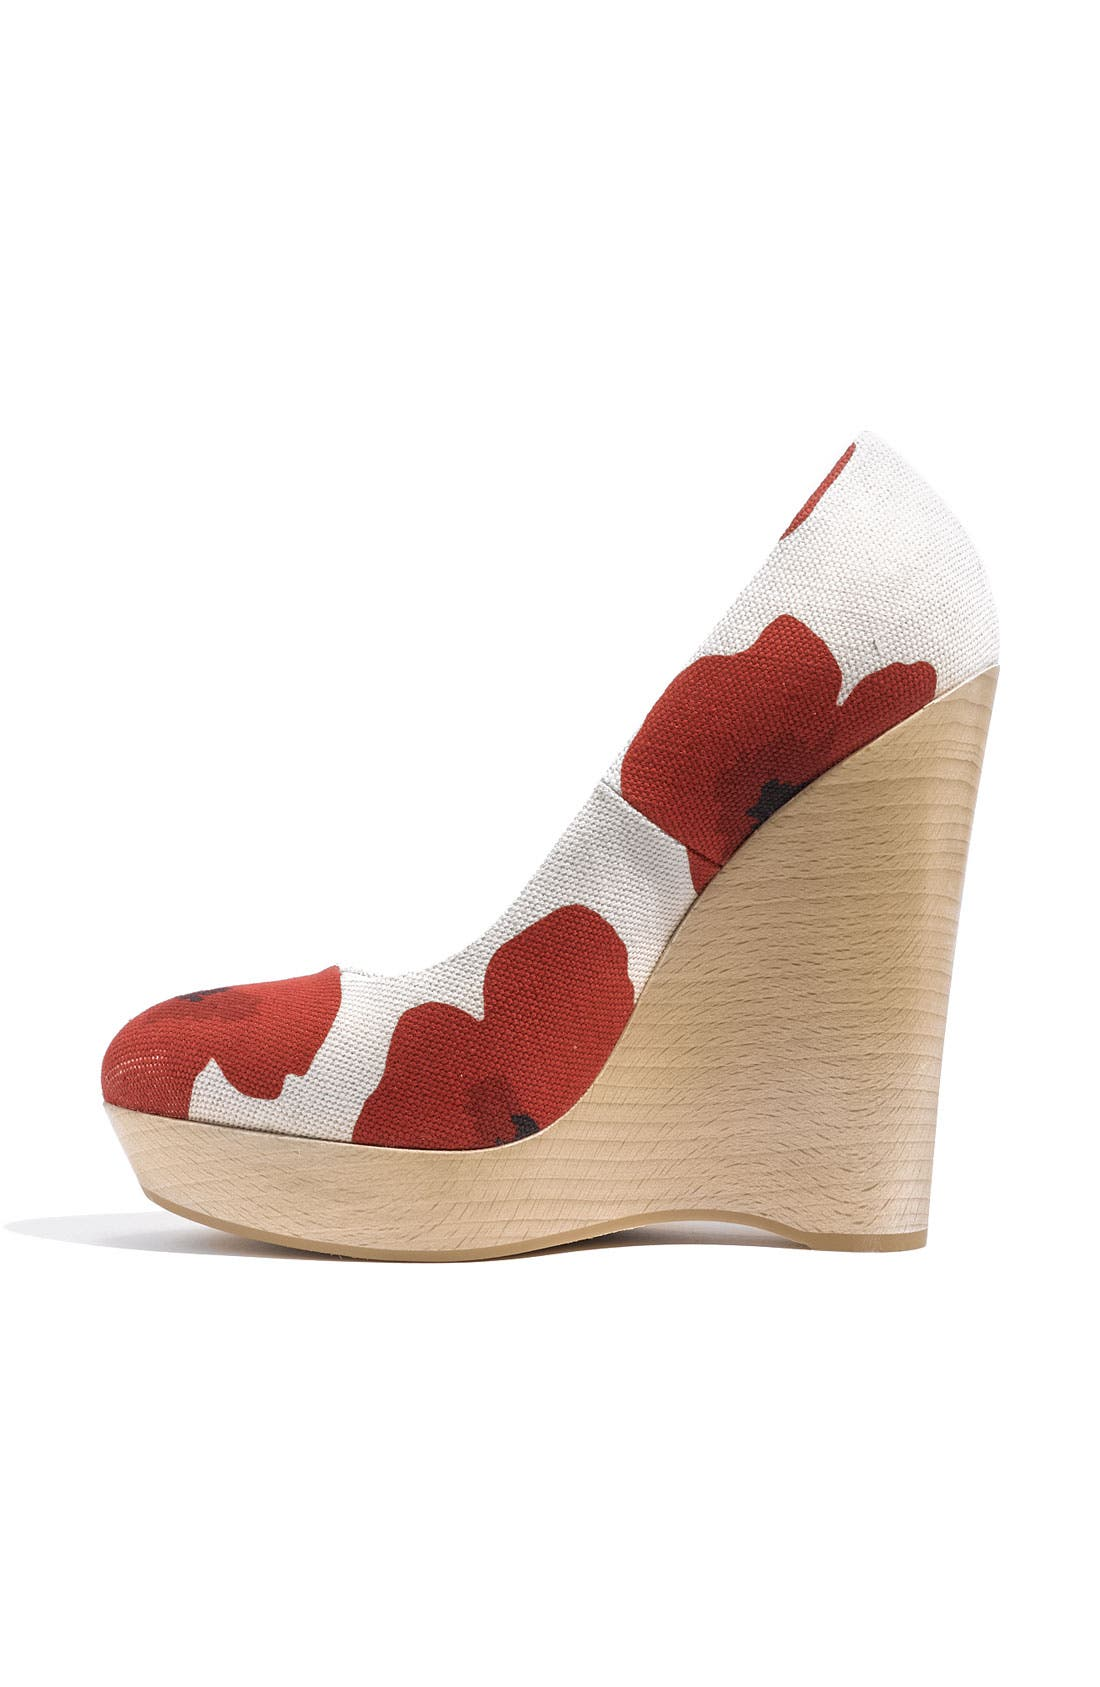 Poppy Print Wedge Pump,                             Alternate thumbnail 3, color,                             600